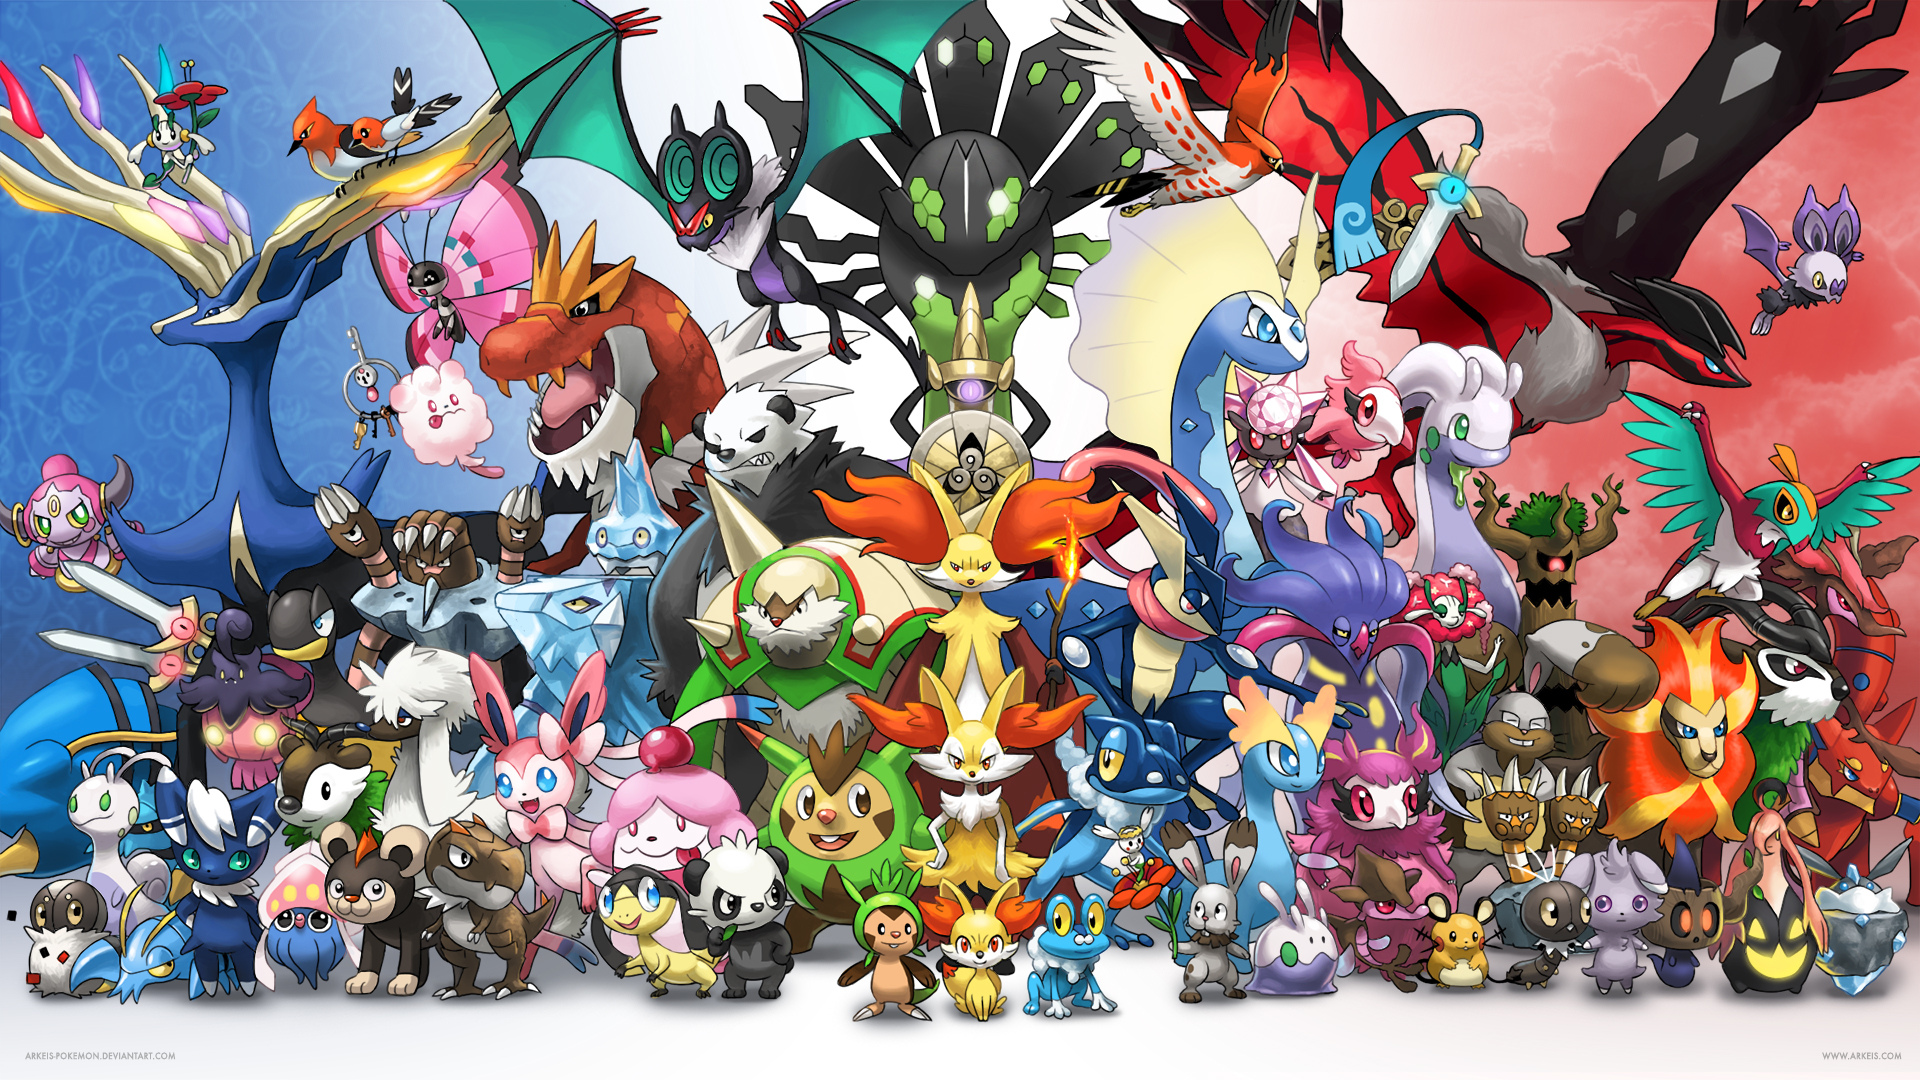 Fondos De Pantalla De Pokemon Wallpapers De Pokemon Gratis